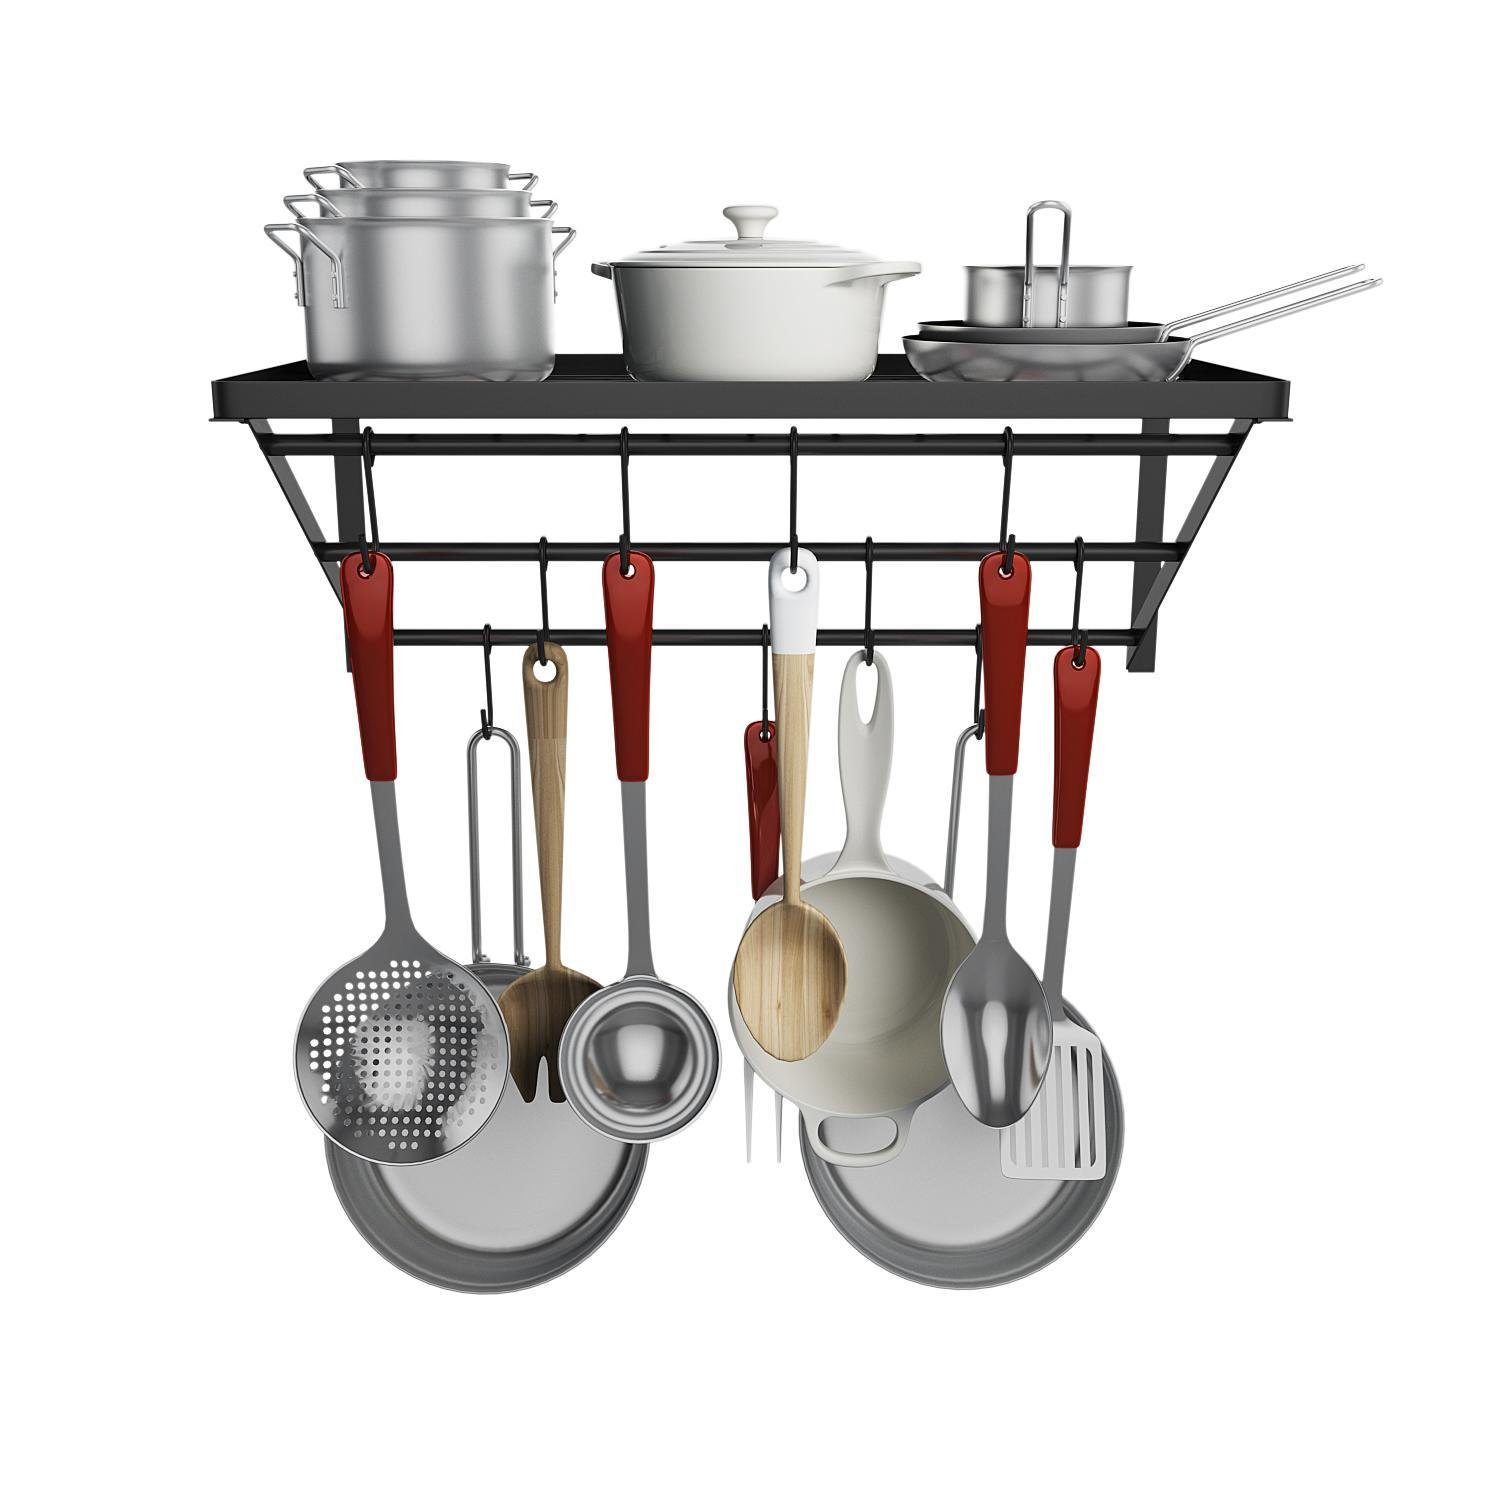 Rapesee Home Kitchen Wall Pot Pan Rack, 3 Layers Mental Cooking Food Pans Organizer Hanger, Large Capacity with 10 Hooks Black